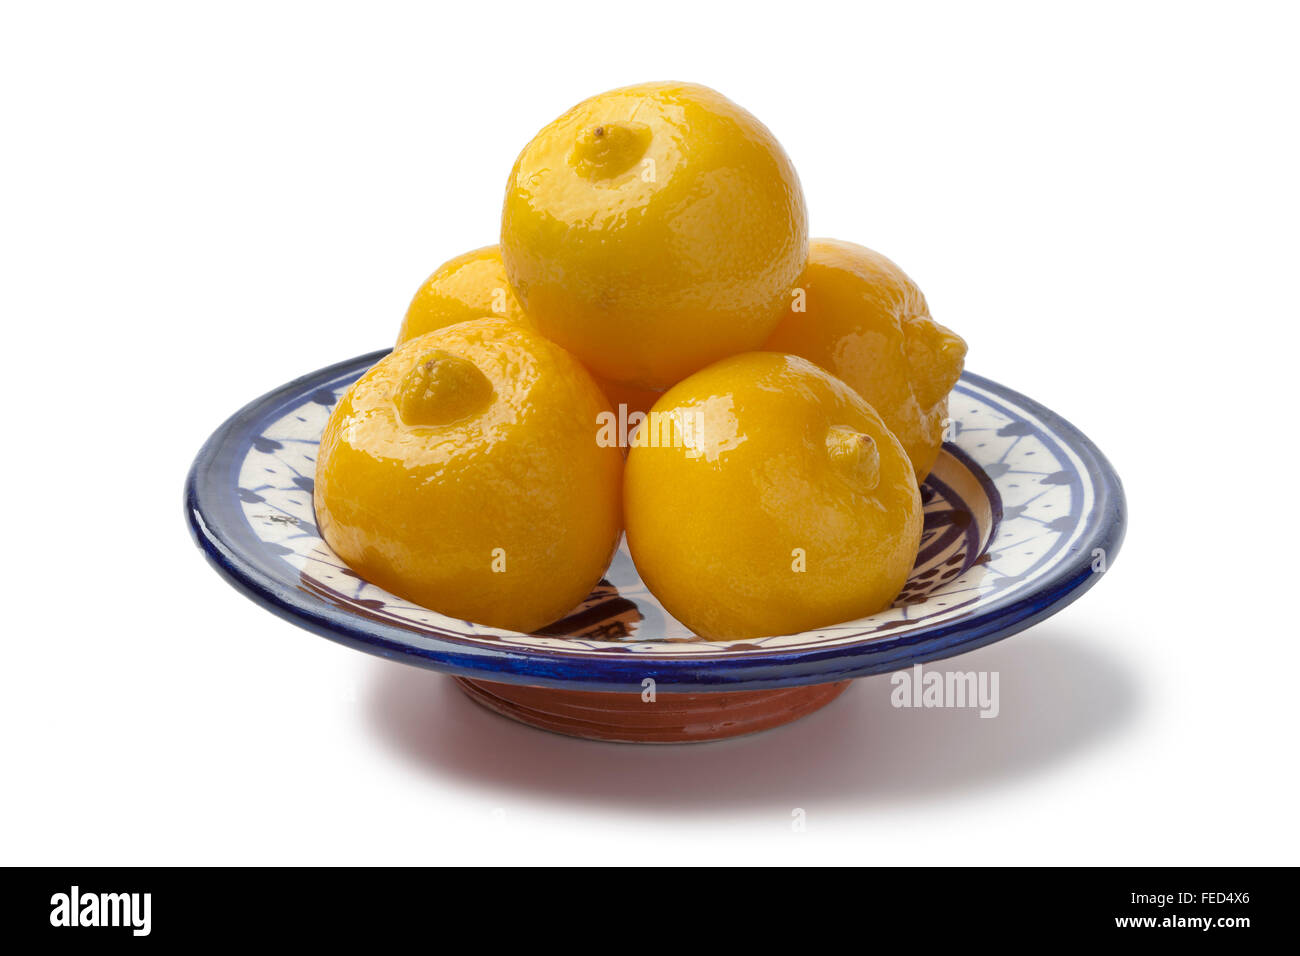 Bowl with Moroccan preserved lemons on white background - Stock Image